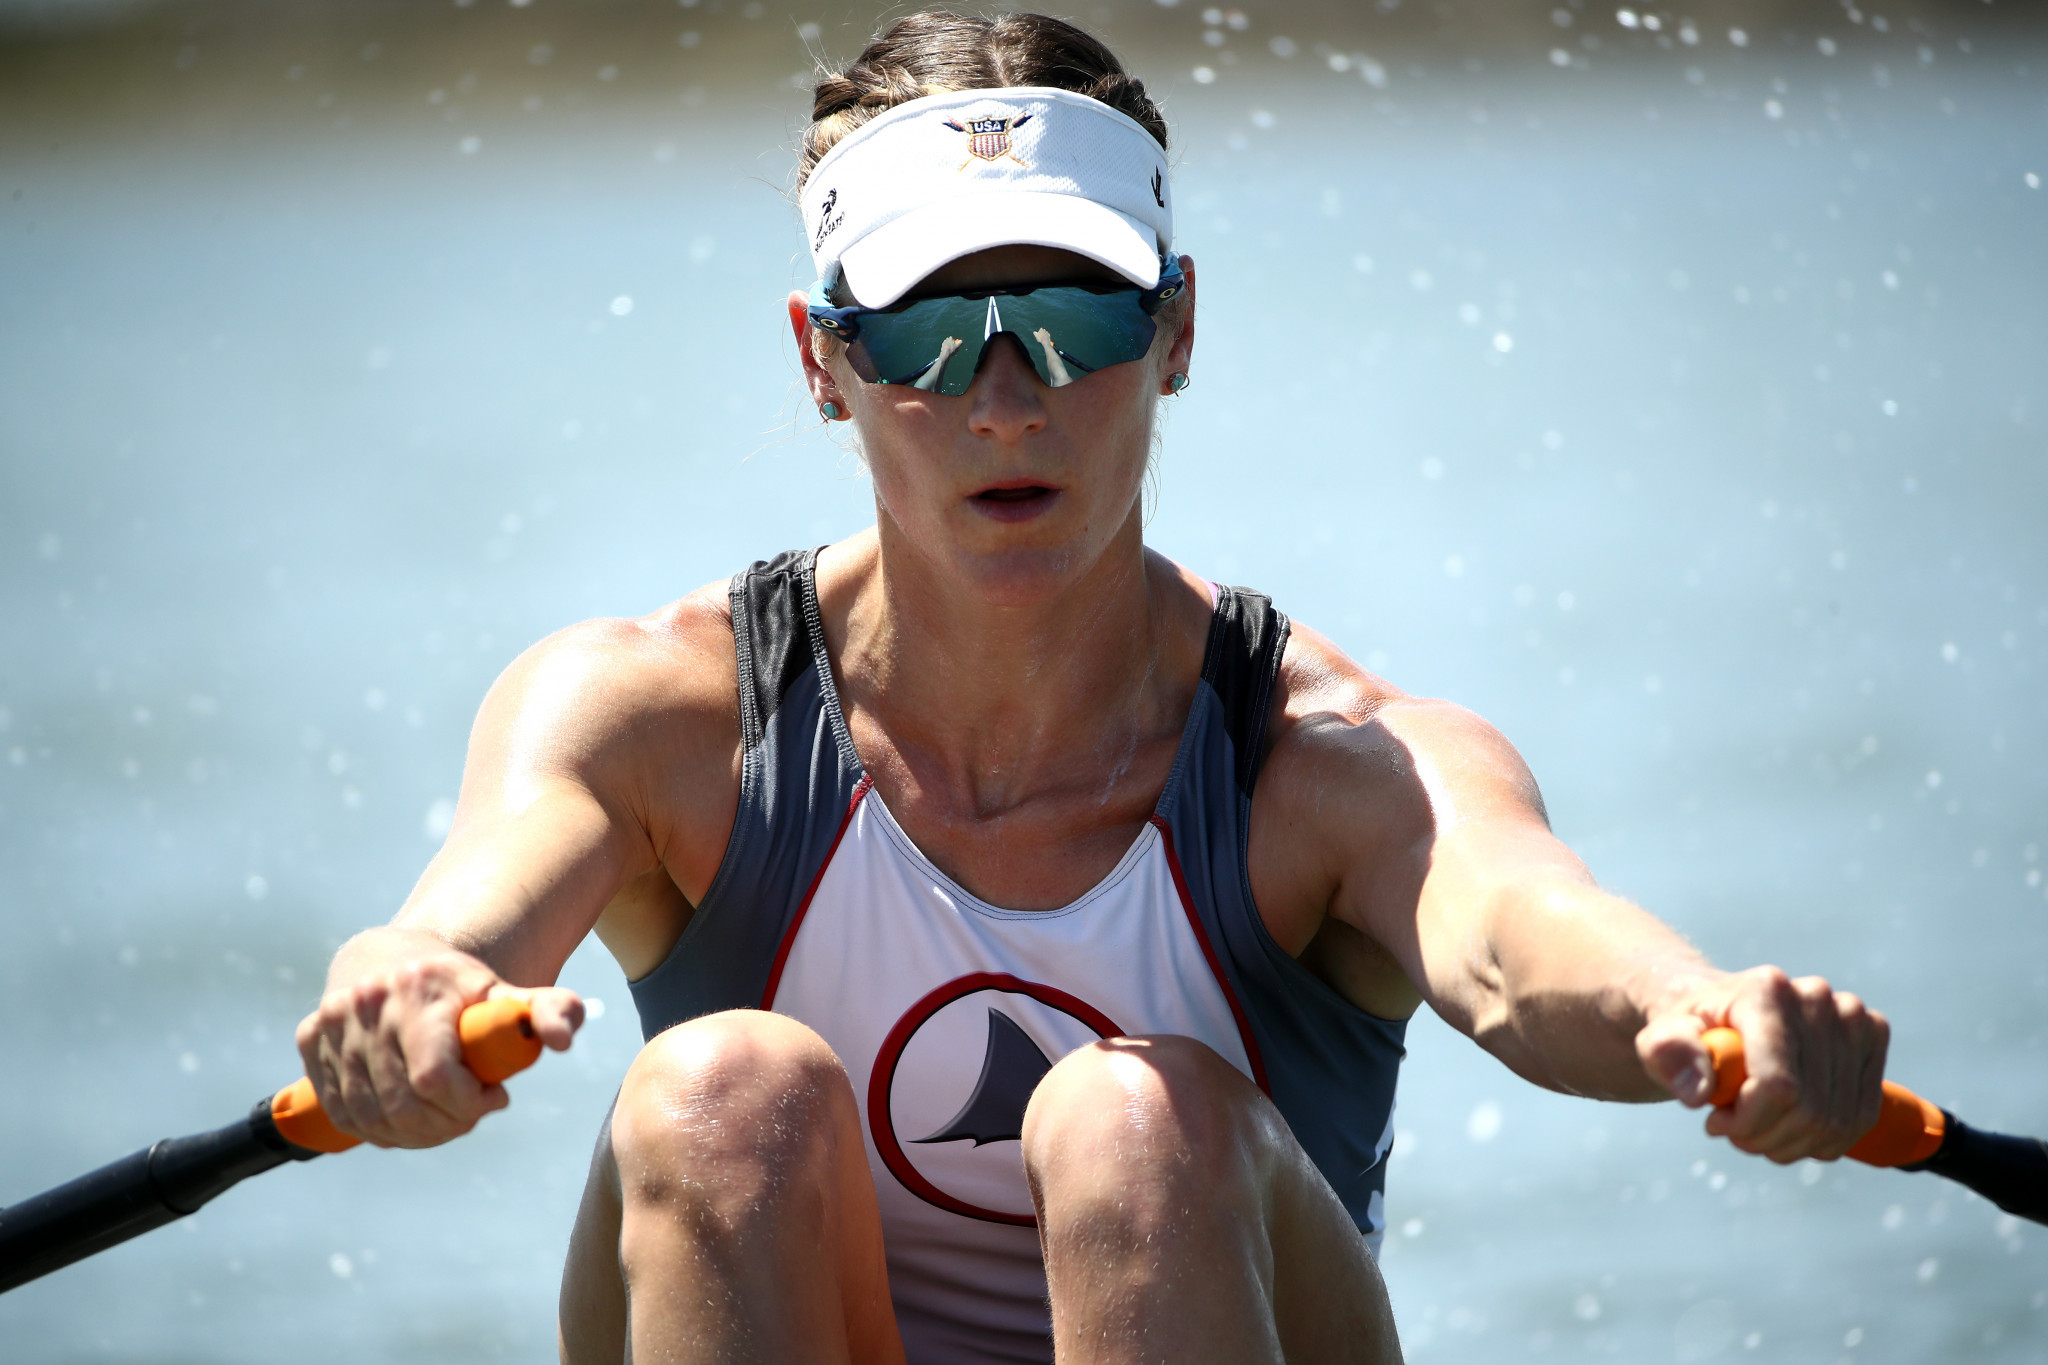 Kohler takes first spot on US Olympic rowing team for Tokyo 2020